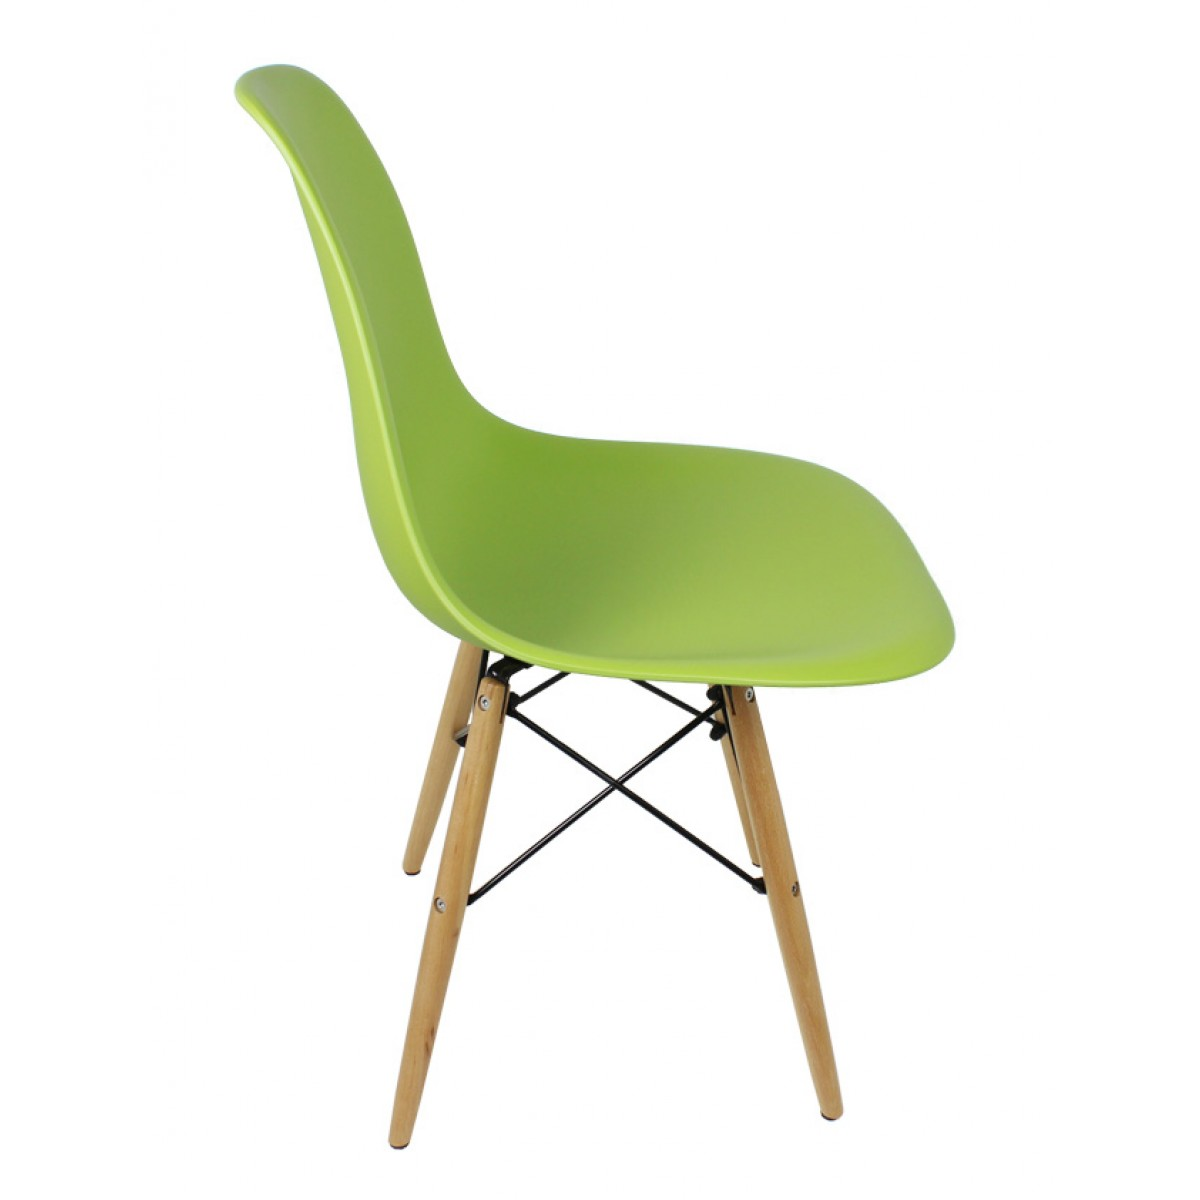 Sedia Wooden Eames Set Of 4 Dsw Molded Lime Green Plastic Dining Shell Chair With Wood Eiffel Legs